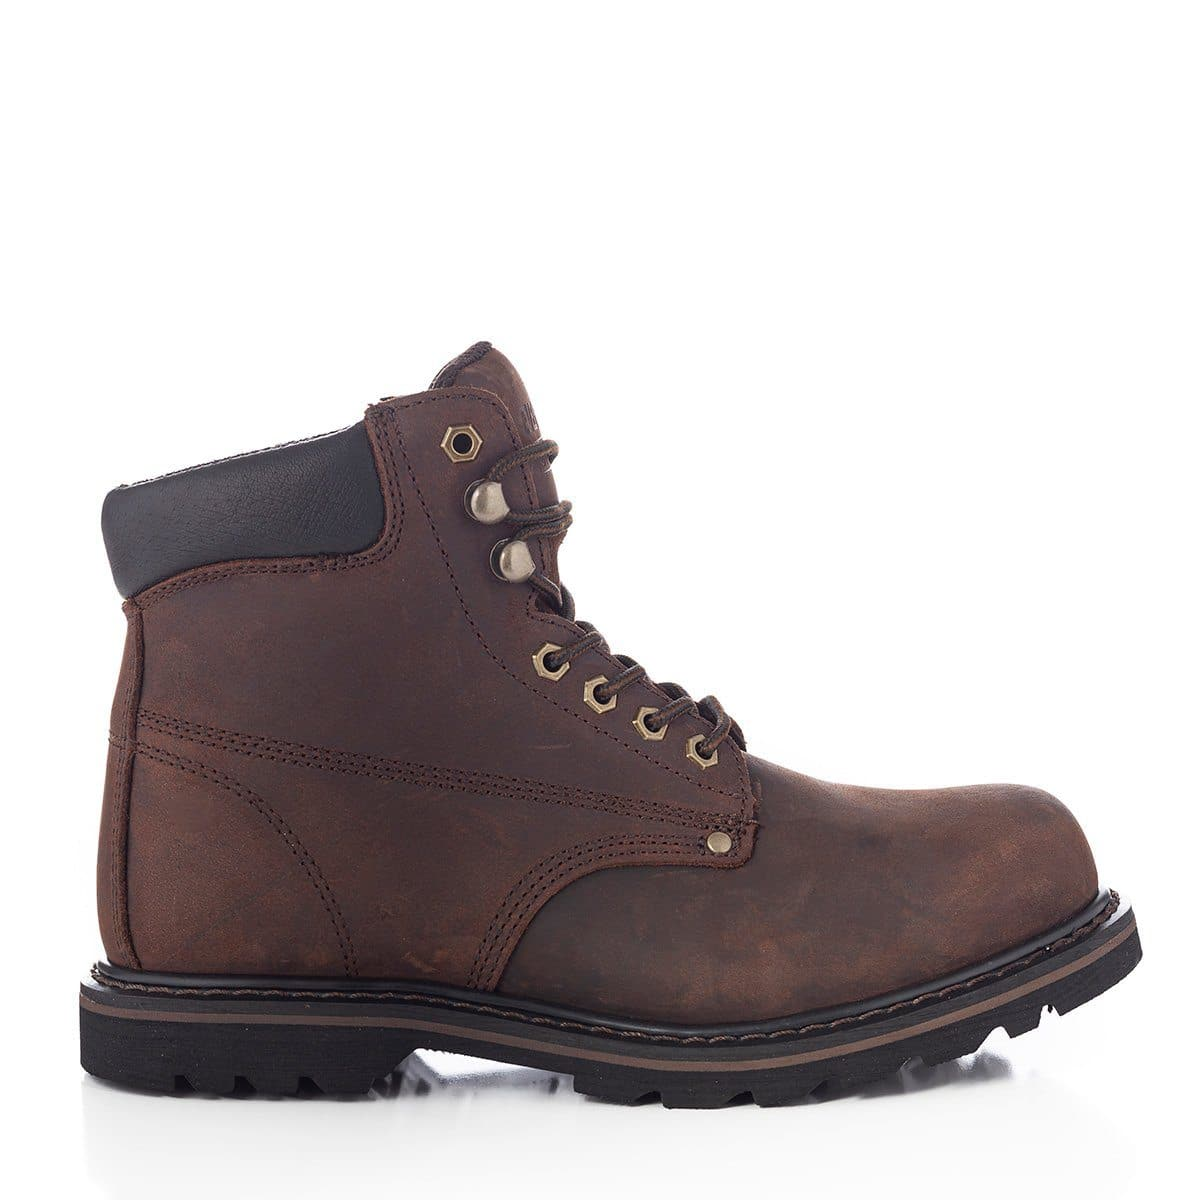 """TANK S"" 6 inch Steel Toe Durable Work Boots Darkbrown - Rubber Outsole - For Construction"